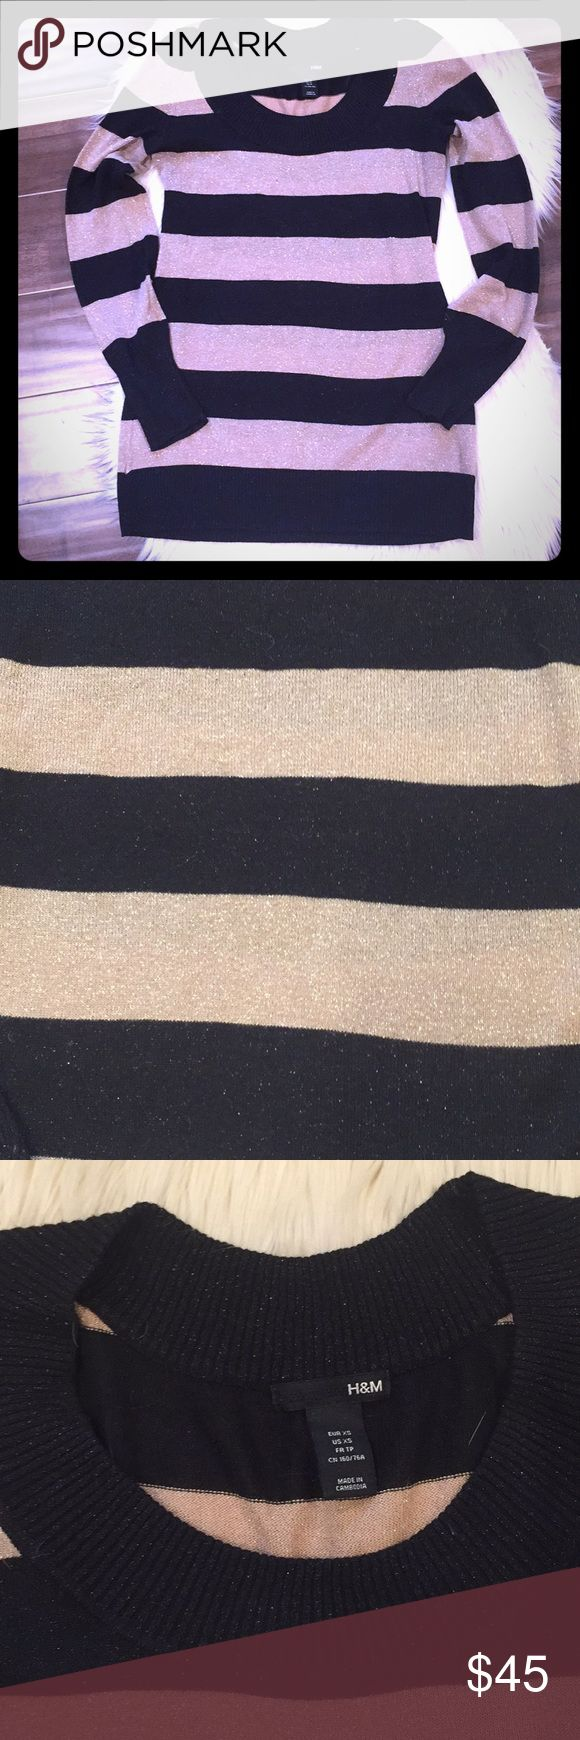 H&M - Gold & Black Striped Long Sleeve Top Like New, gently worn excellent condition! H&M size XS Black & Gold Striped Long Sleeve Top. Can be worn for work with dress pants or casual with a pair of nice dark jeans! H&M Tops Tees - Long Sleeve